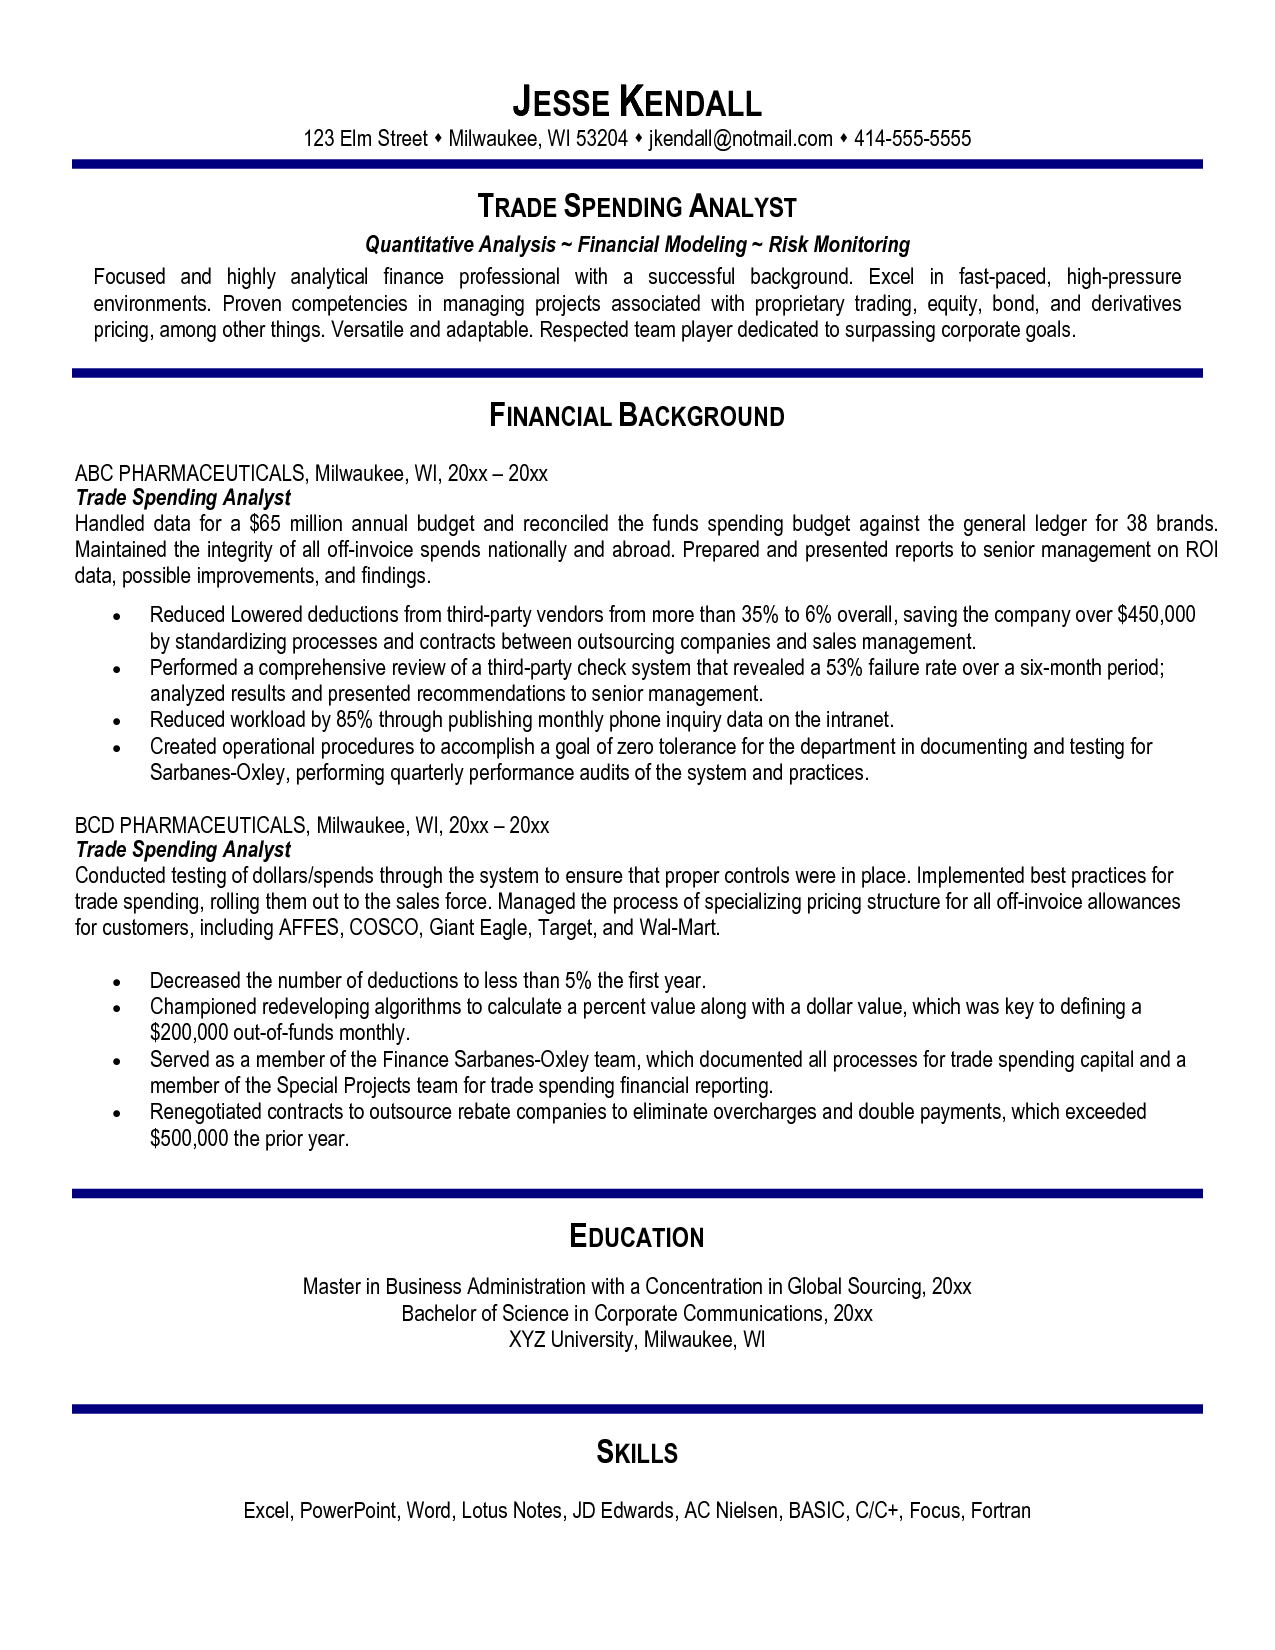 Proprietary Trading Resume Sample - http://www.resumecareer.info ...